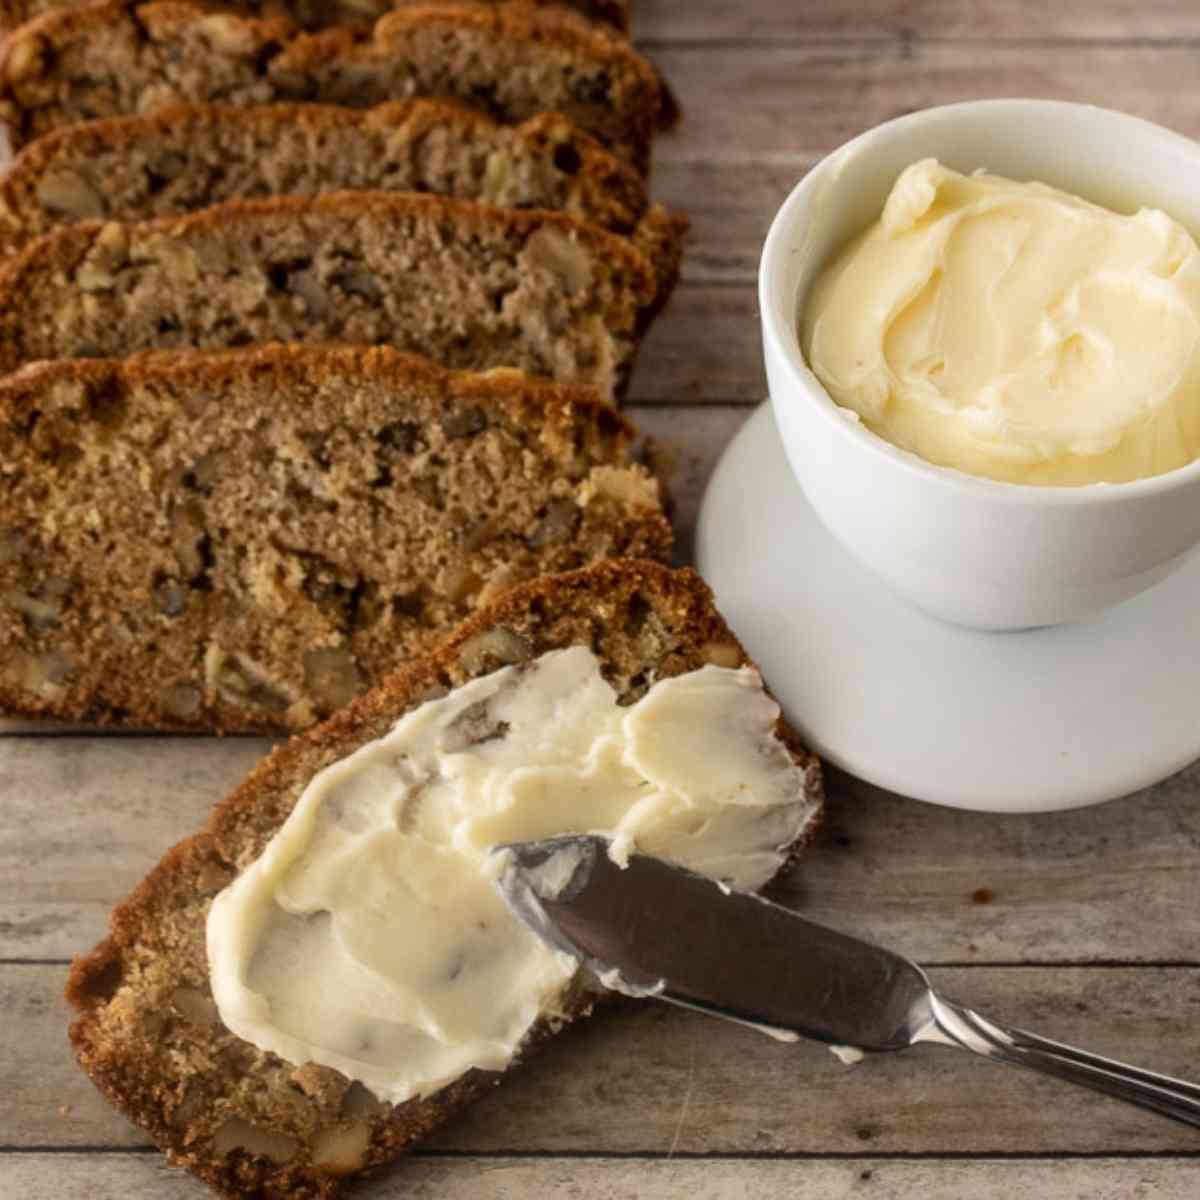 A buttered slice of fresh apple bread.